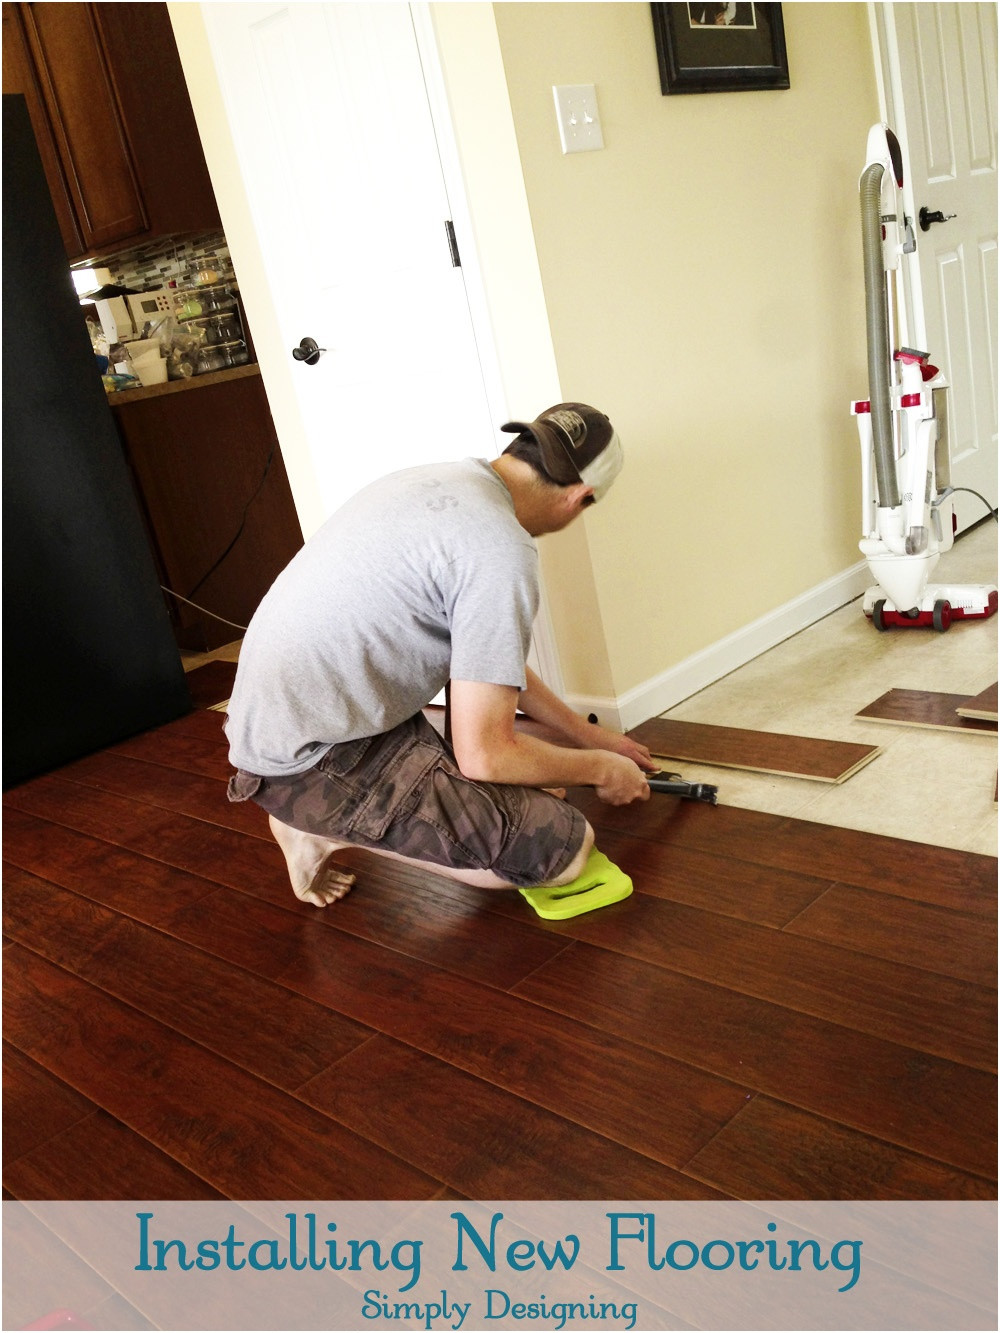 Installing Hardwood Floors Youtube Of Youtube Video Installing Laminate Flooring Images 72 Best Flooring within Related Post